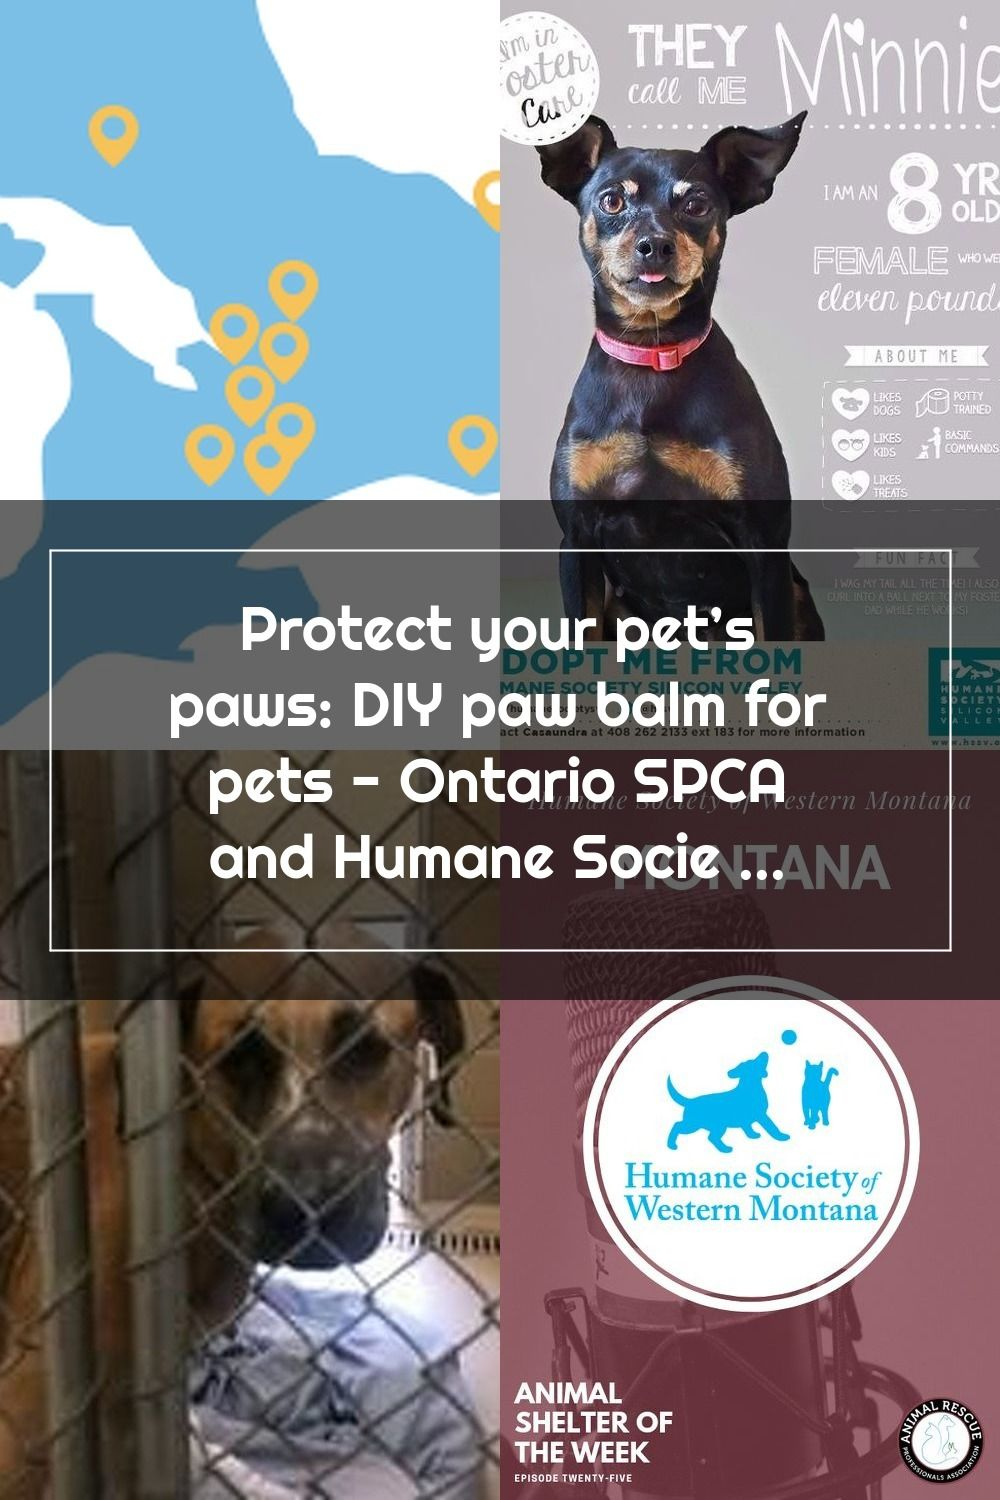 Protect Your Pet S Paws Diy Paw Balm For Pets Ontario Spca And Humane So In 2020 Paw Balm The Balm Spca